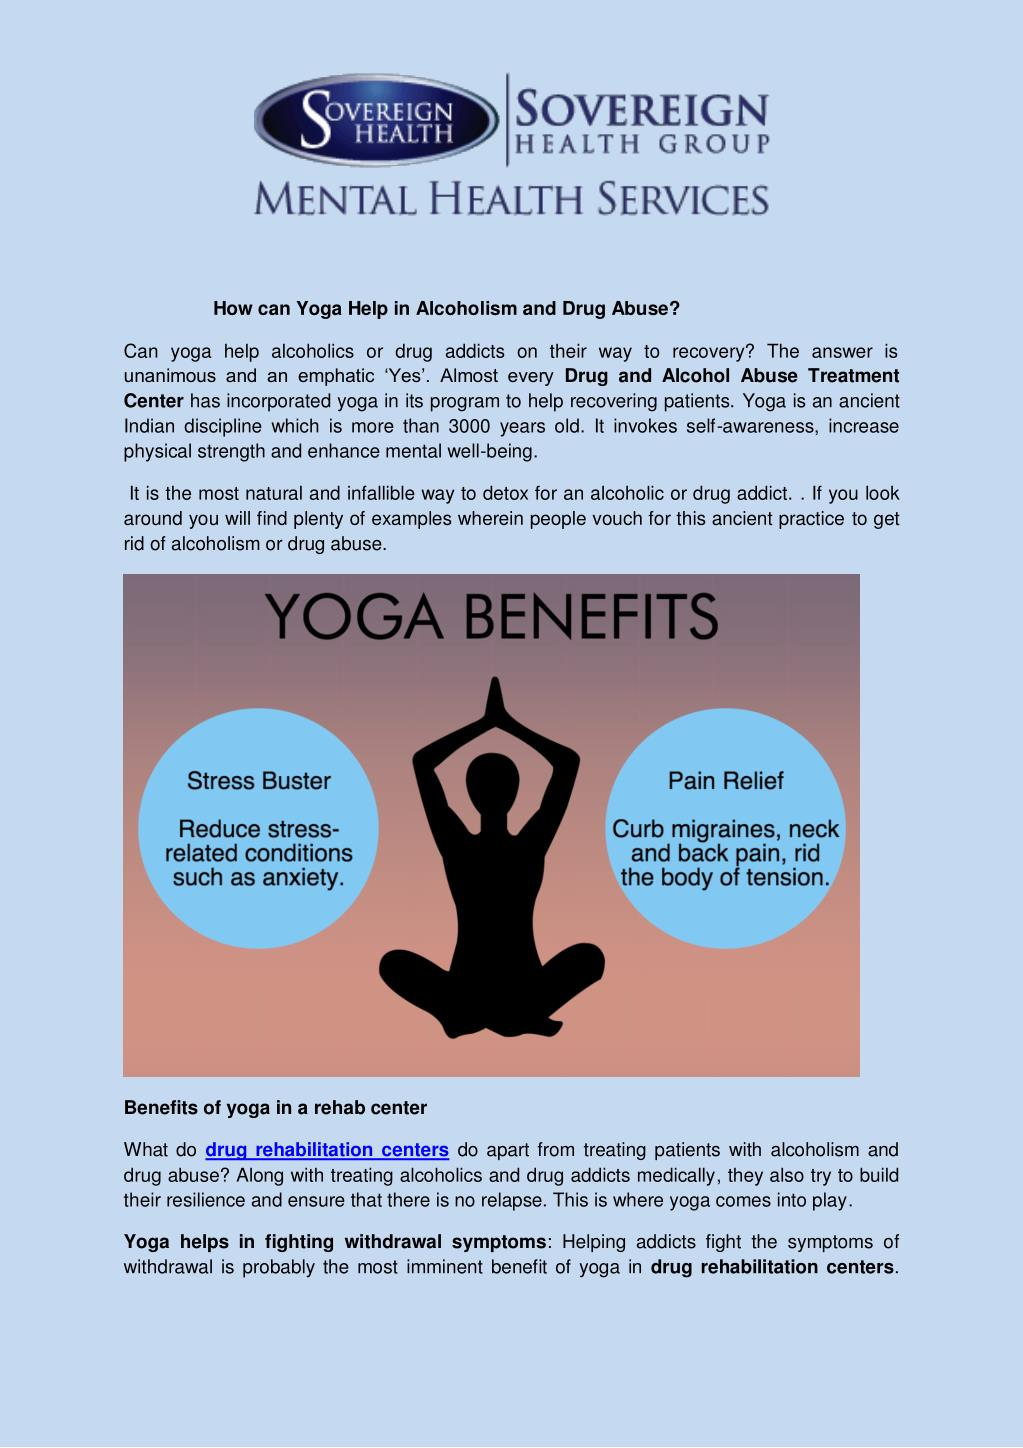 ppt - how can yoga help in alcoholism and drug abuse powerpoint